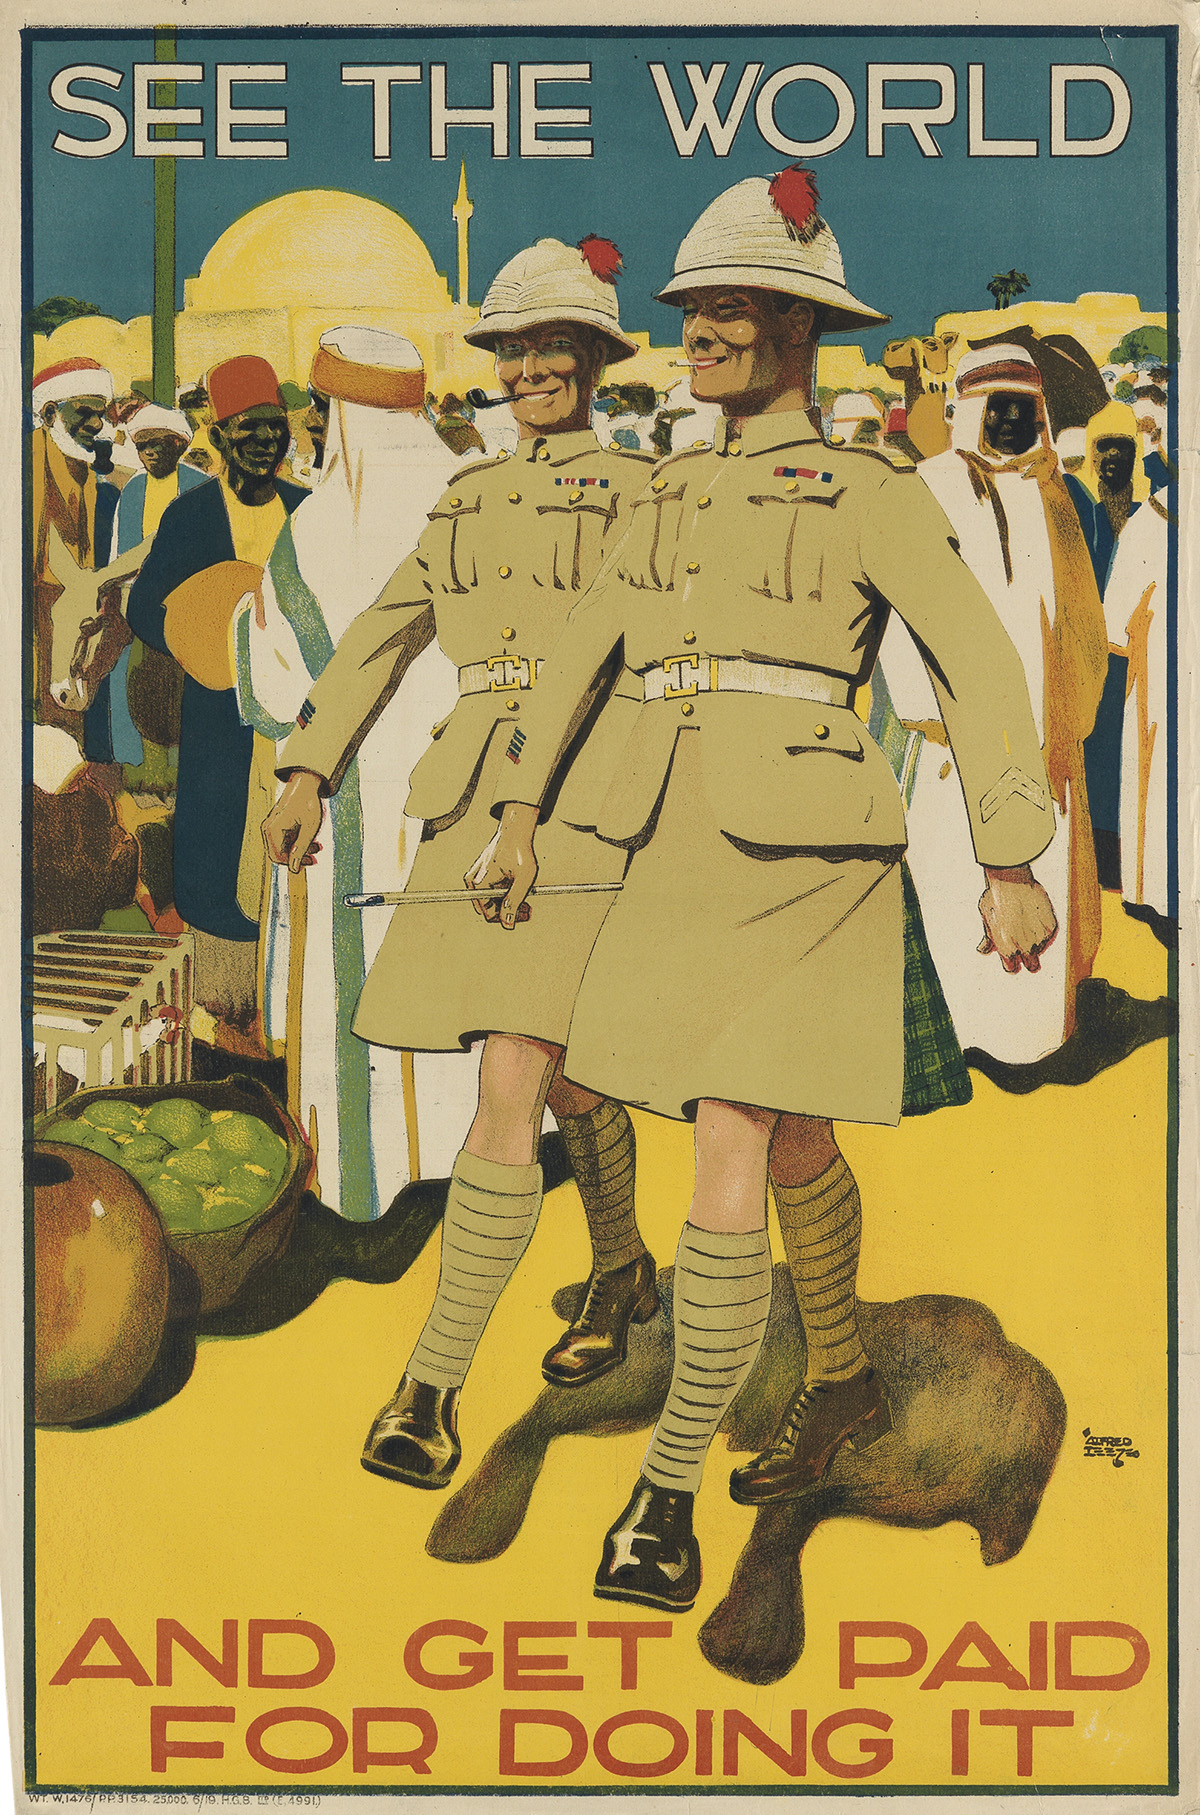 ALFRED LEETE (1882-1933). SEE THE WORLD / AND GET PAID FOR DOING IT. 1919. 30x20 inches, 76x50 cm. H.G.B. Ltd., [London.]